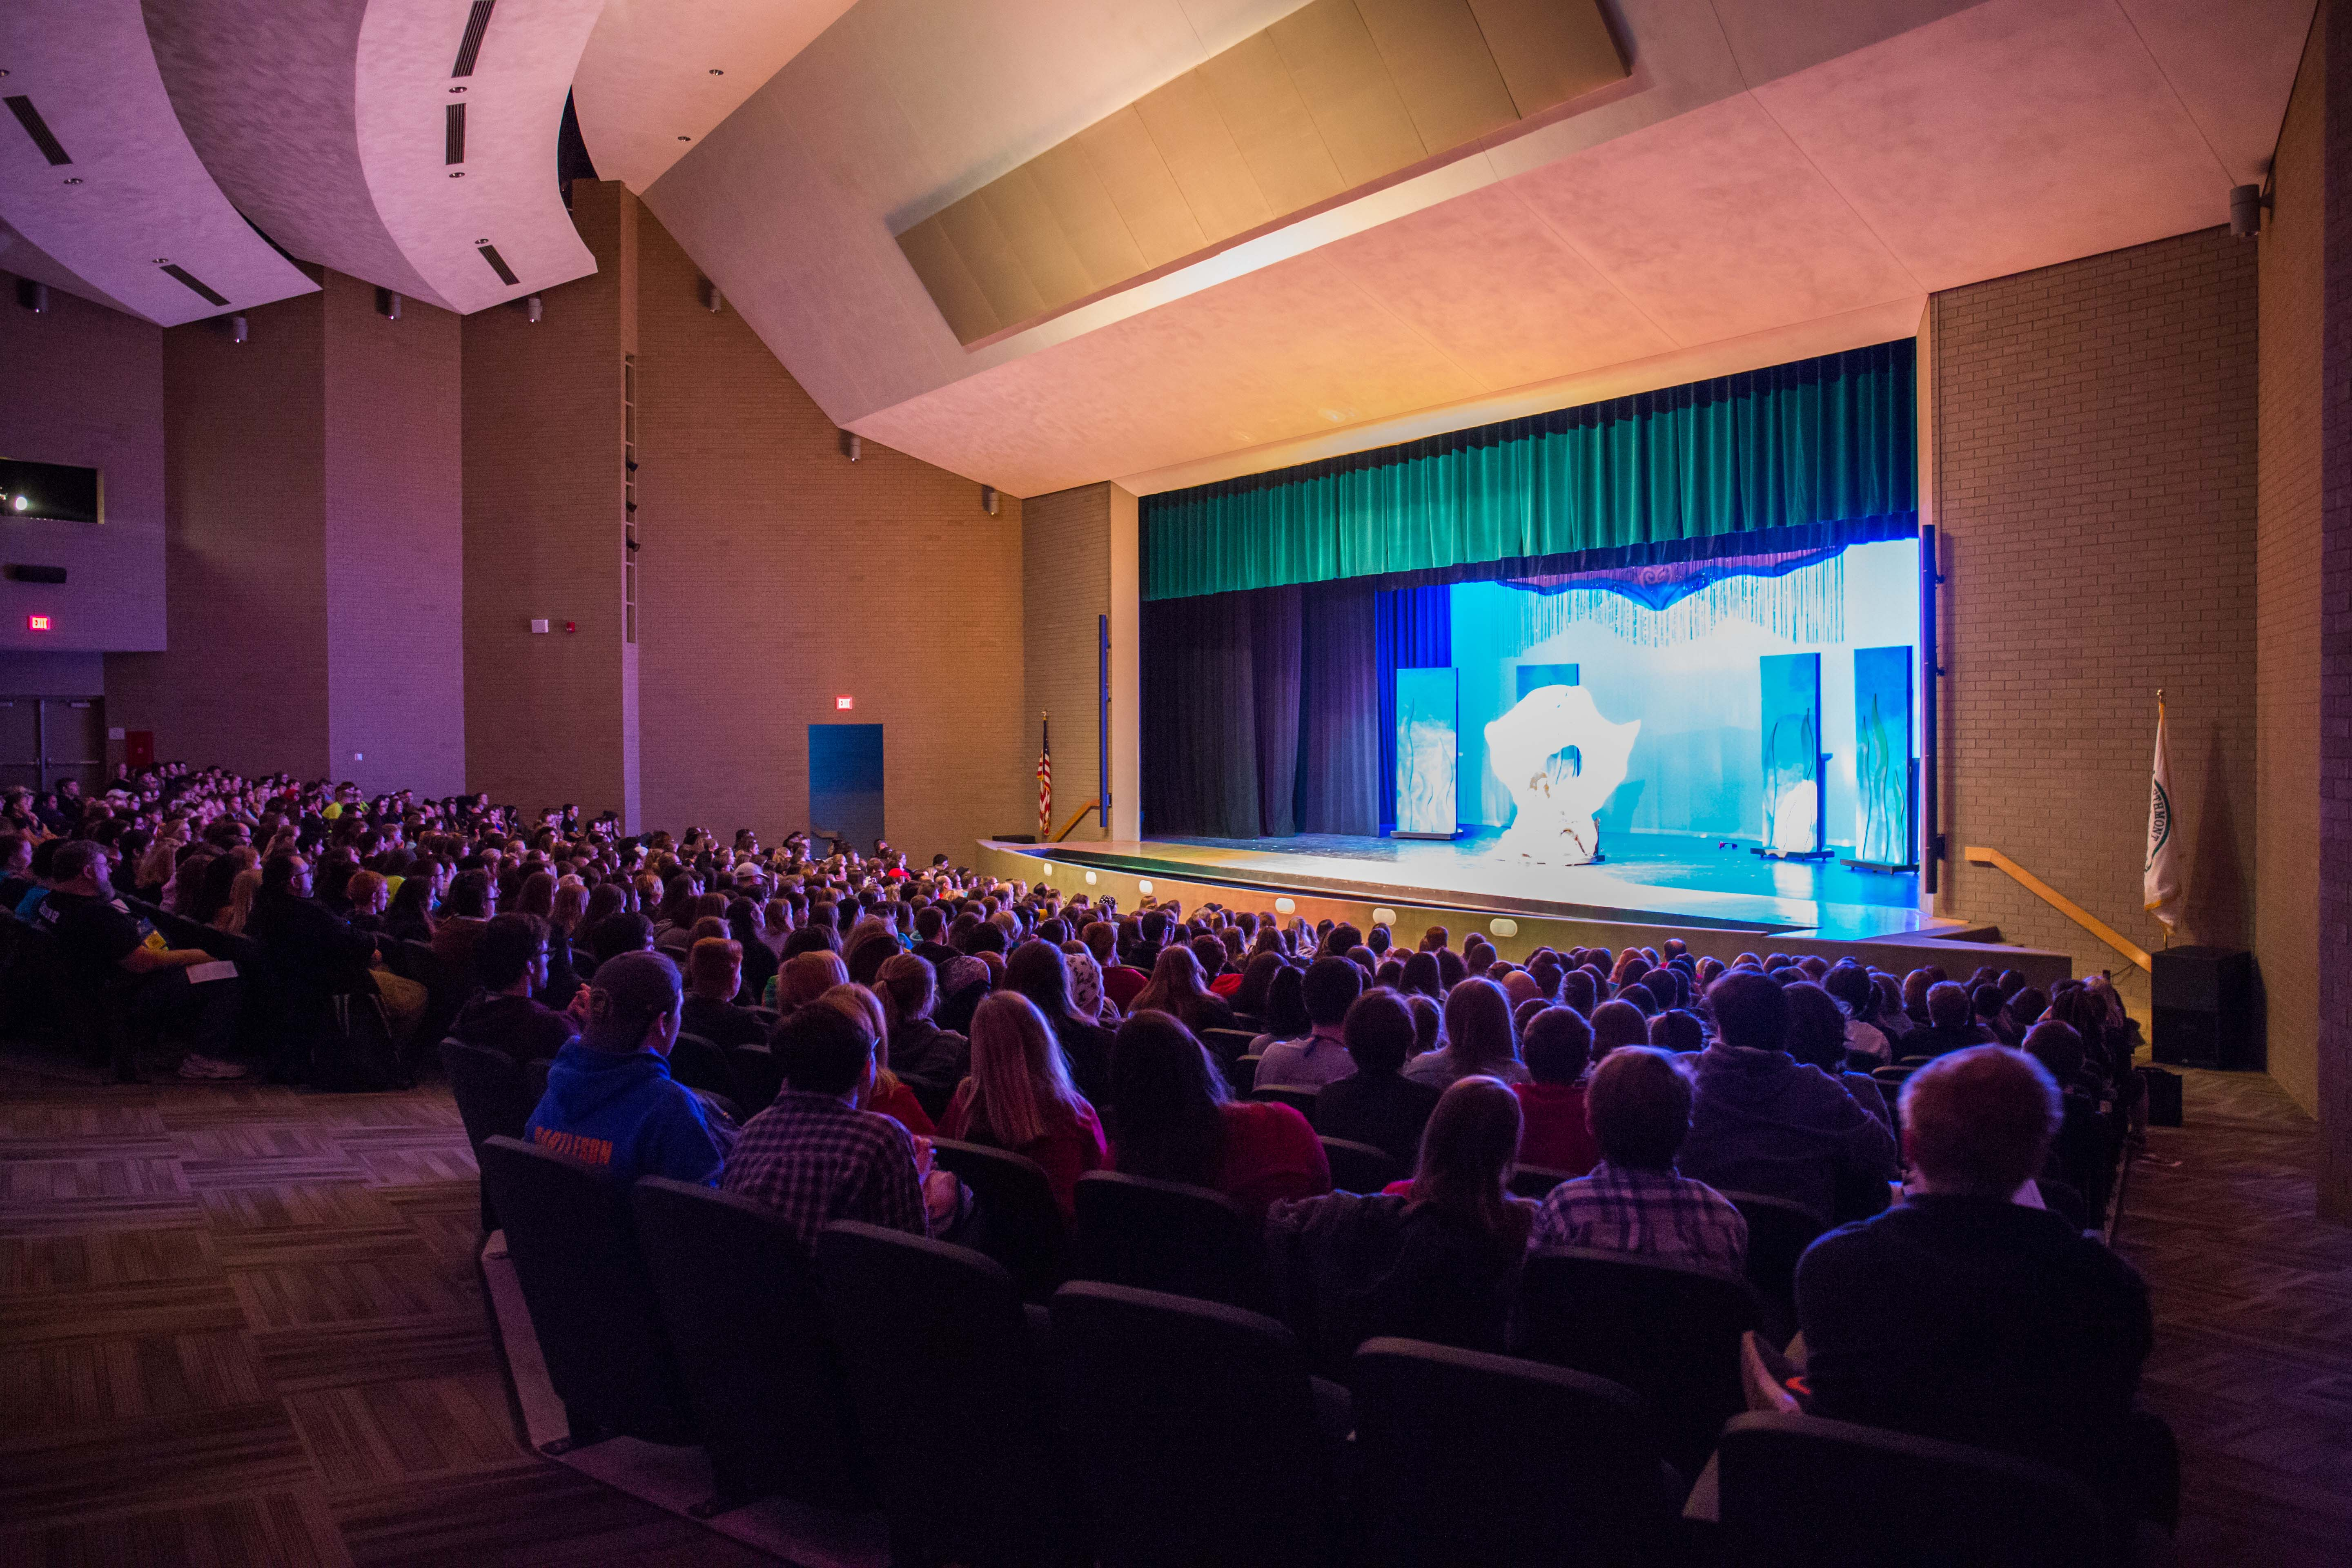 auditorium full of students watching a performance on stage